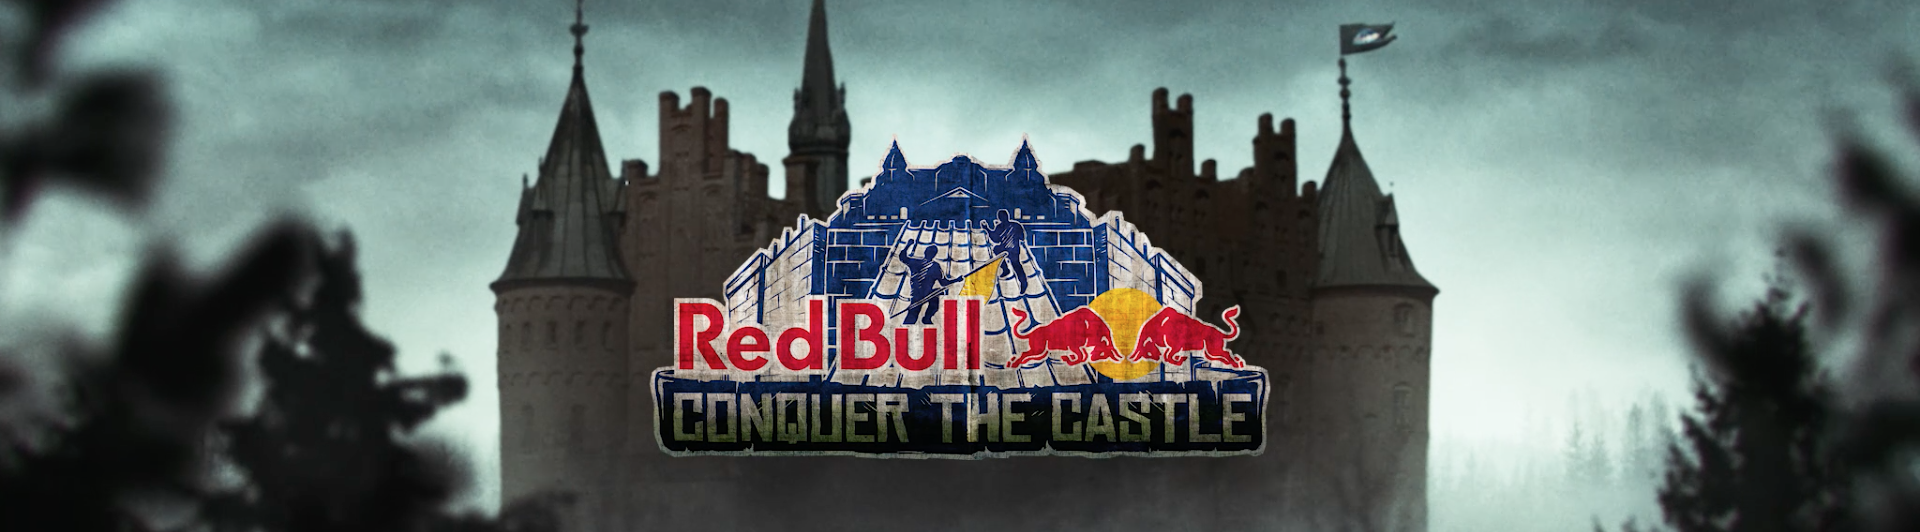 Red Bull Conquer The Castle